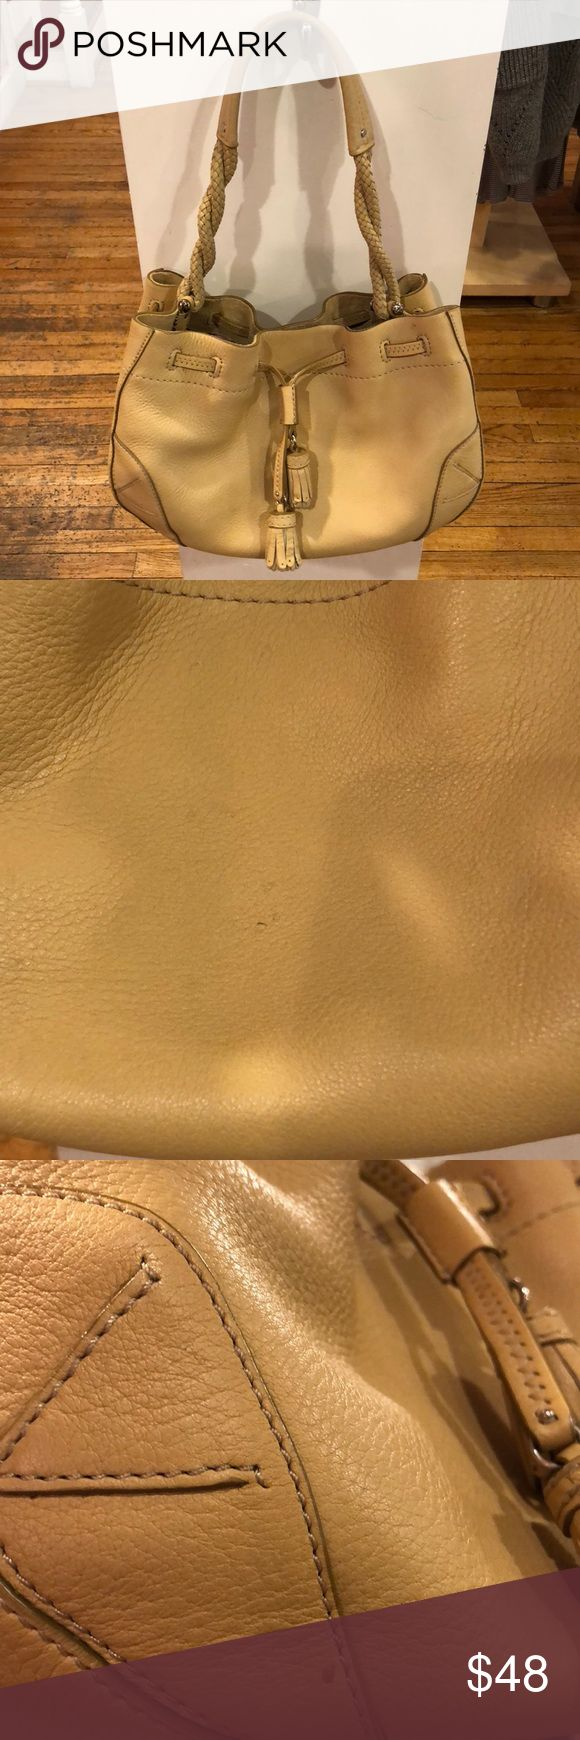 """Cole Haan Tan Leather Bag This call on tan leather drawstring bag has tassel details and braided twisted handles. Used condition but lots of life left! A great medium sized bag. Visible wear is pictured.  Measures approximately 13"""" L x 7.5"""" H x 7"""" W  Feel free to ask any questions! I accept reasonable offers. Cole Haan Bags"""